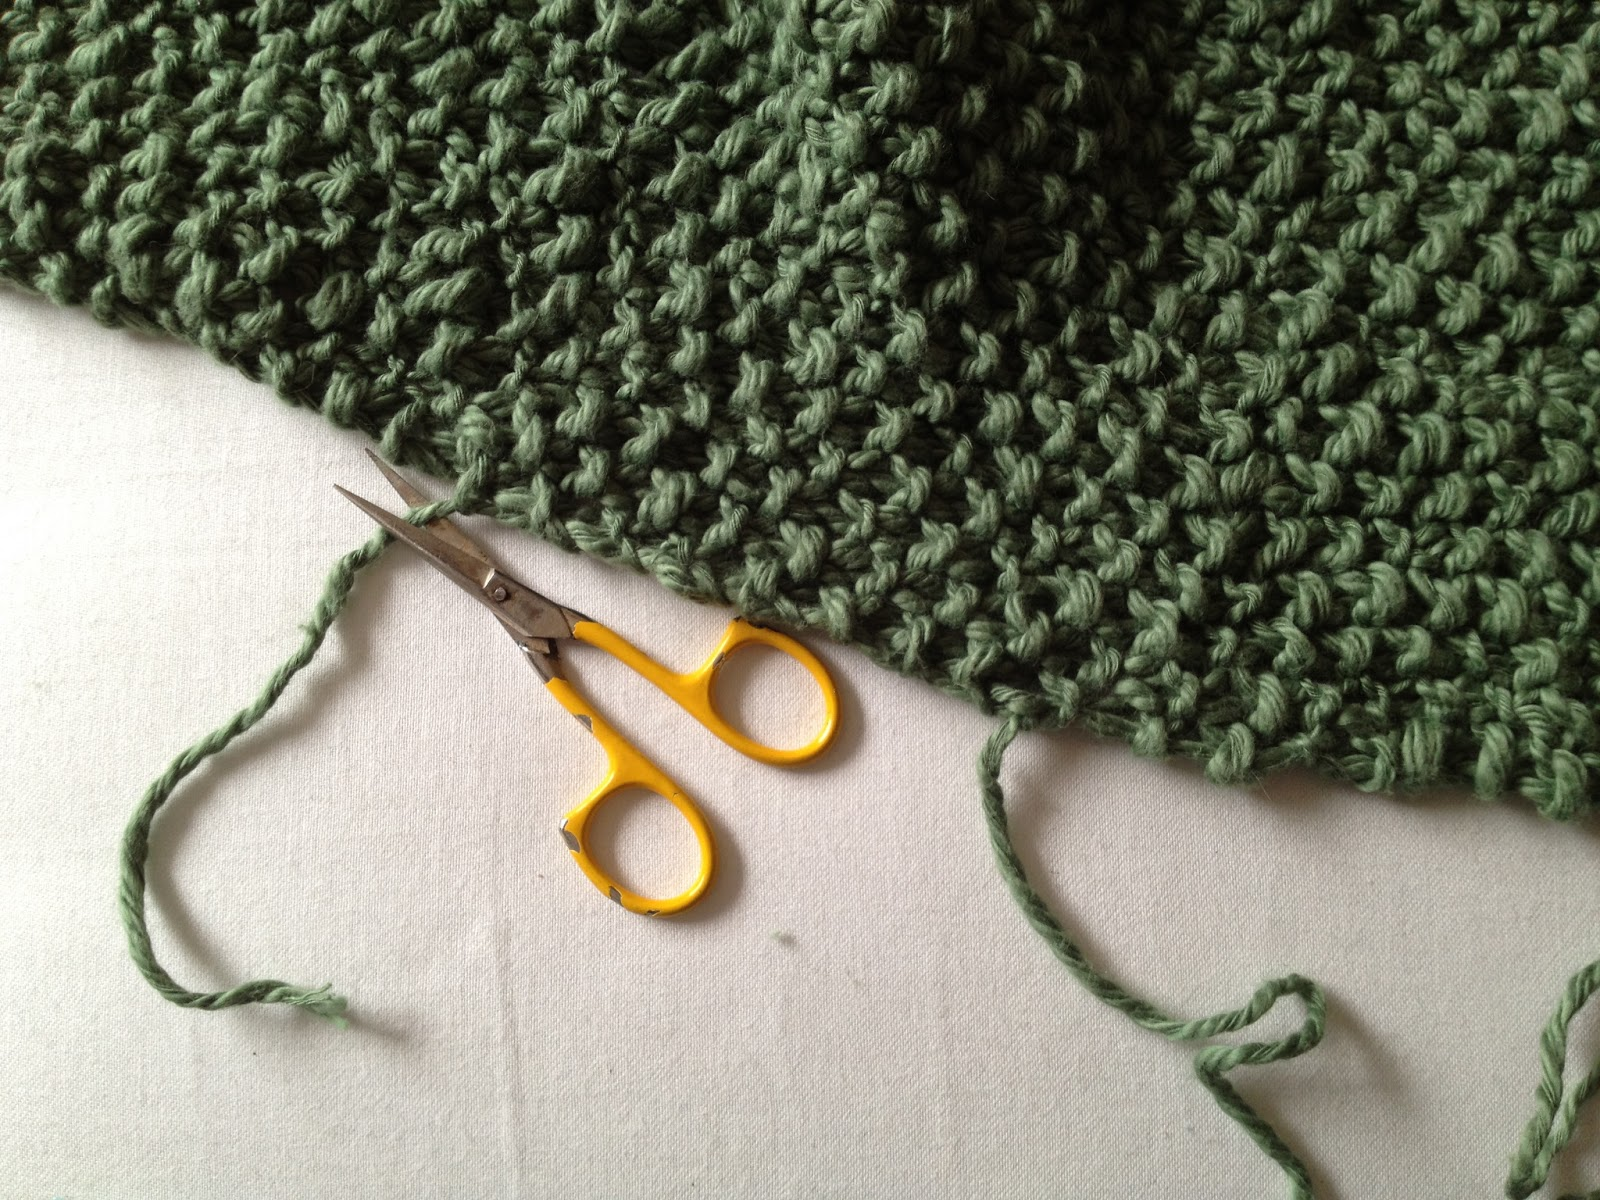 STEP TWO DARN / WEAVE IN YARN ENDS